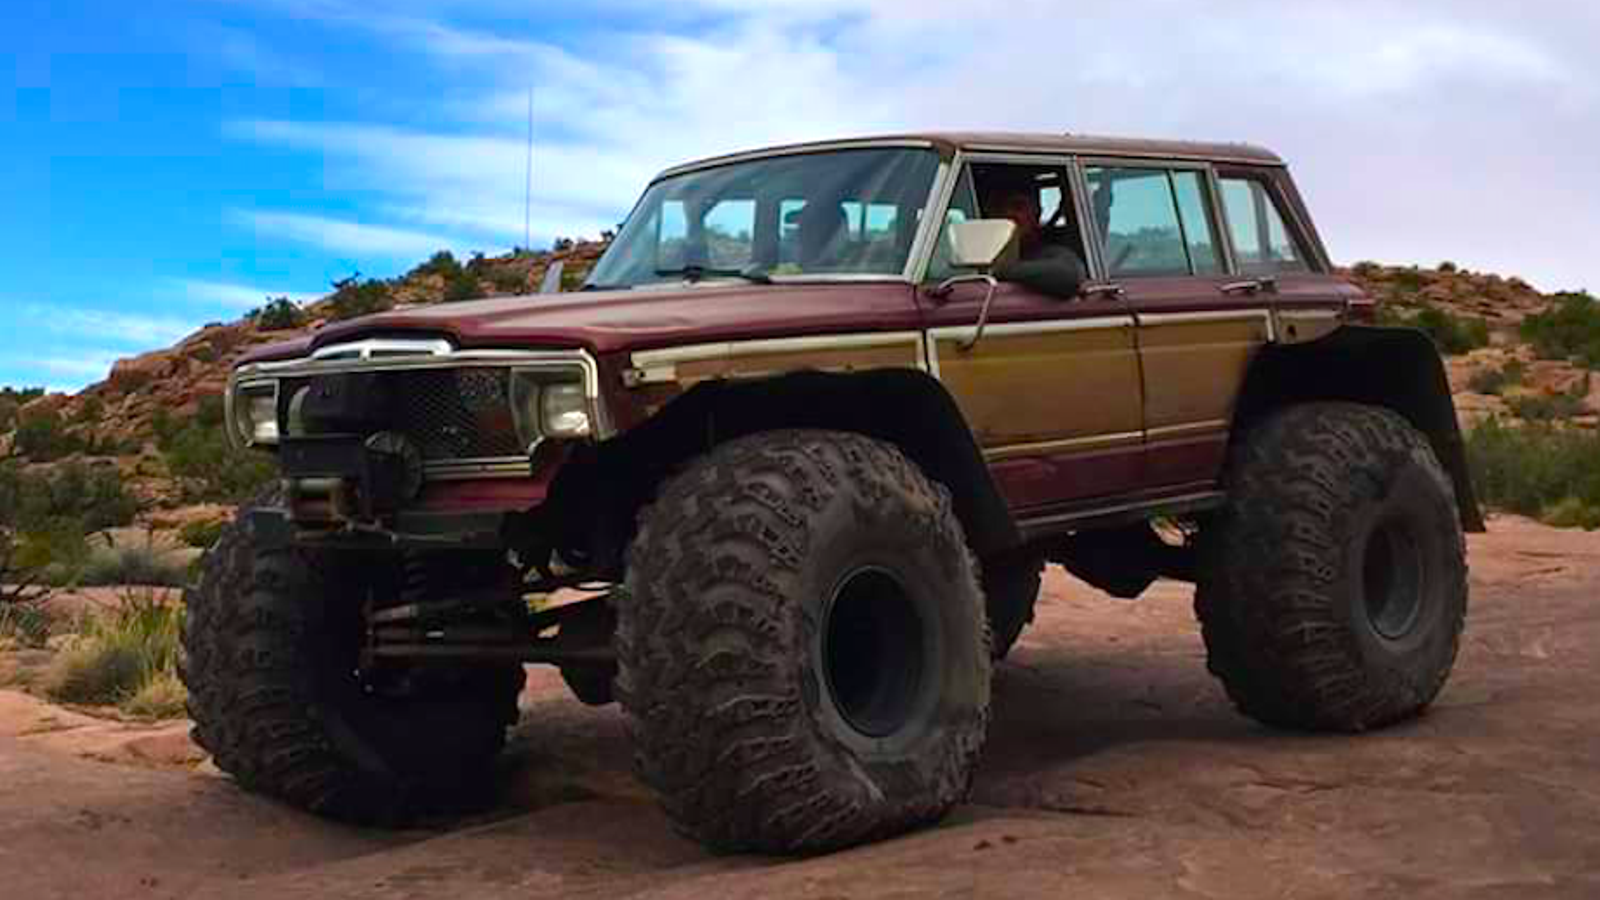 One Thing I Can't Stand About Off-Road Culture: Hacking Up